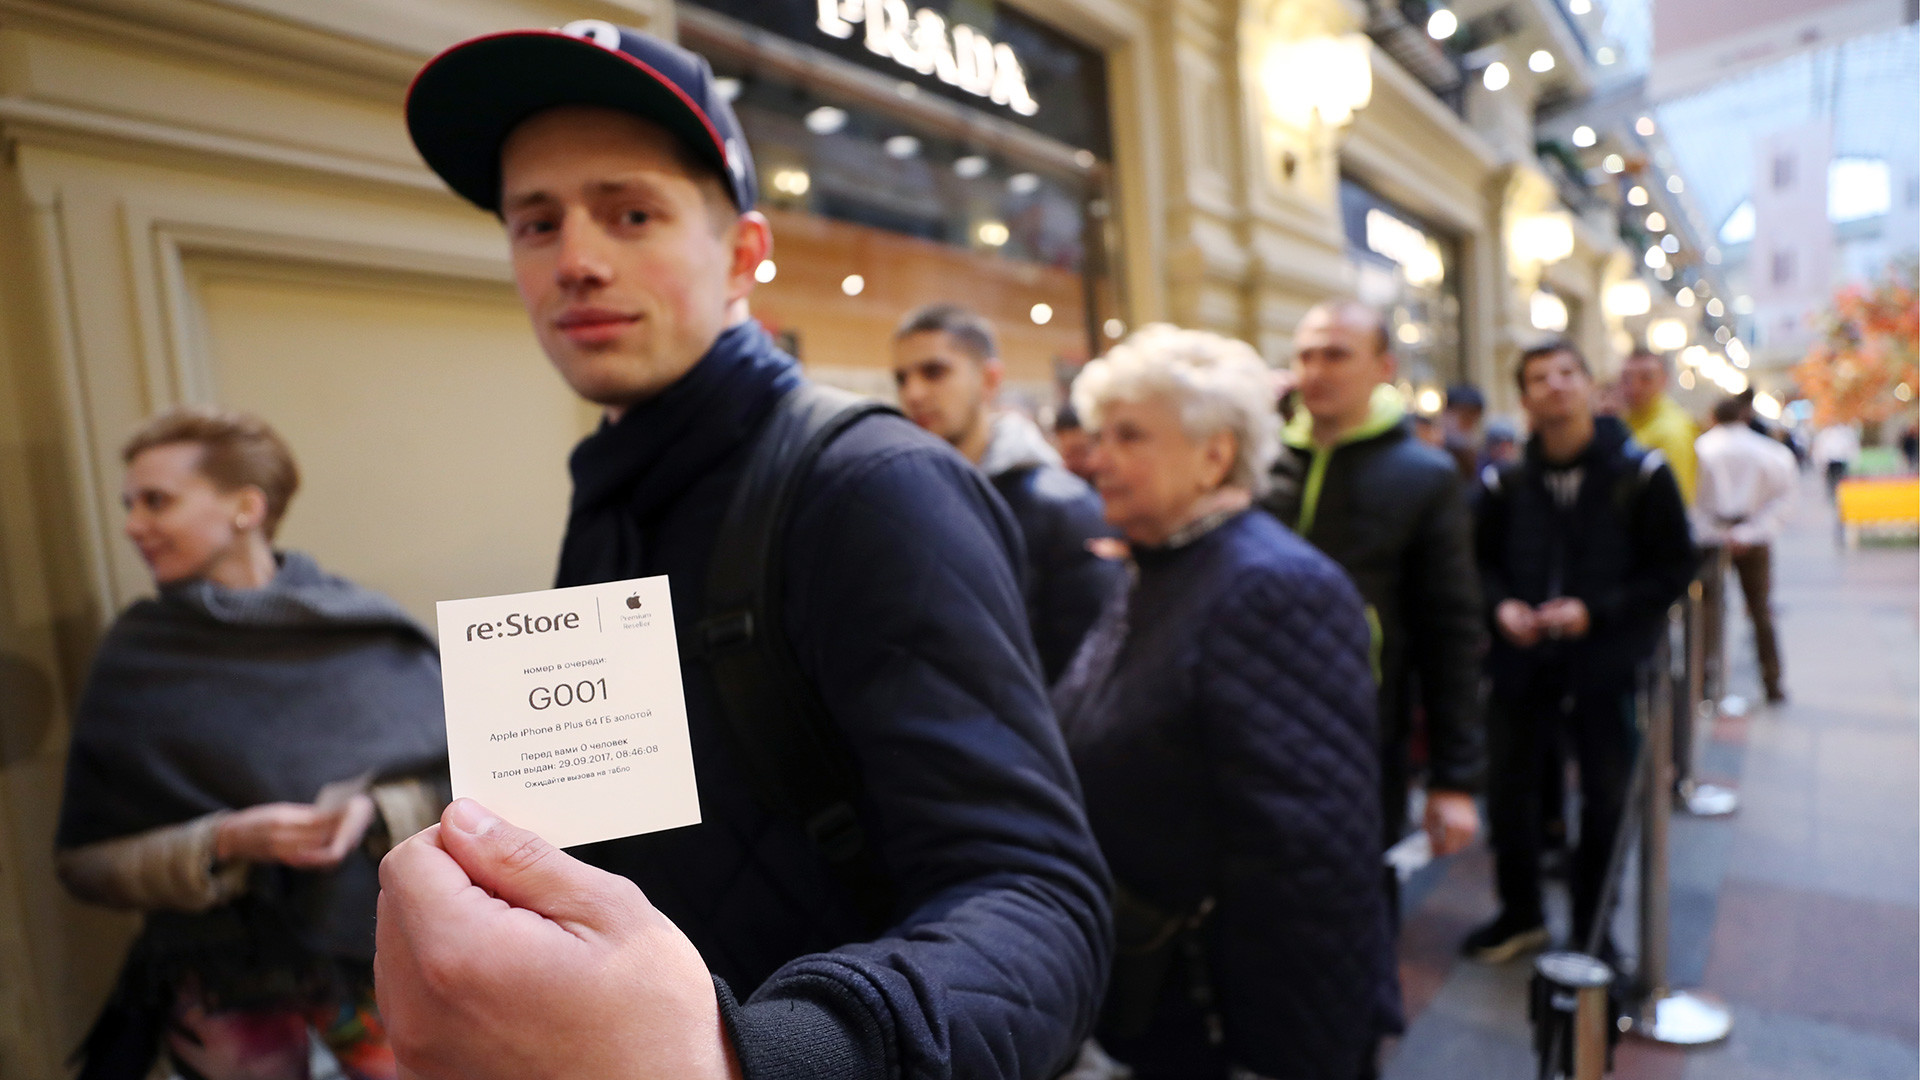 People wait in line inside the GUM department store to buy new iPhone 8 and iPhone 8 Plus as Apple's latest smartphones officially go on sale in Russia.